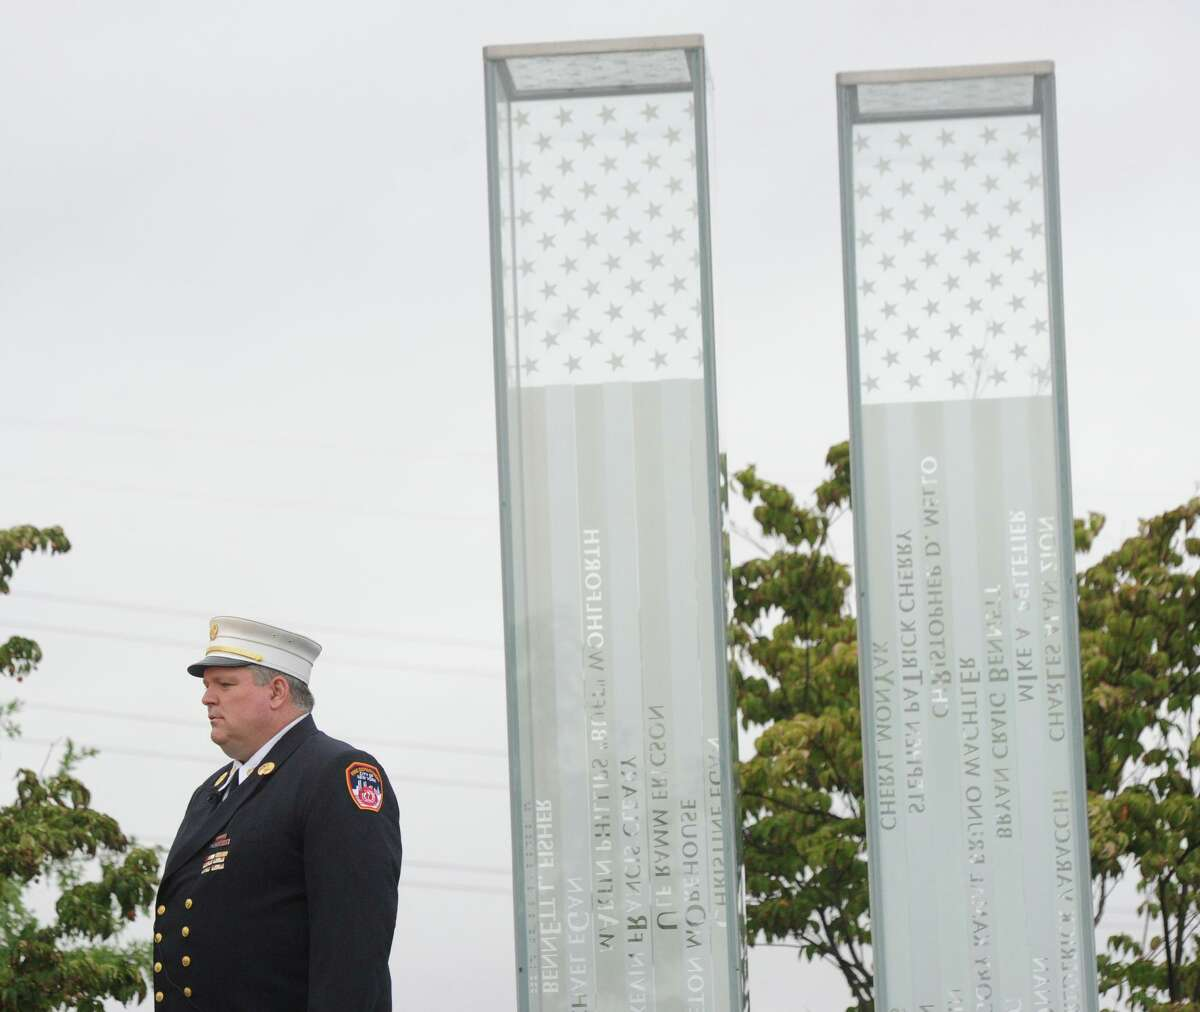 Photos of the September 11th Remembrance Service at Cos Cob Park in the Cos Cob section of Greenwich, Conn., Tuesday, Sept. 11, 2018. Thirty-three people with close ties to Greenwich were killed in the 9/11 attacks.